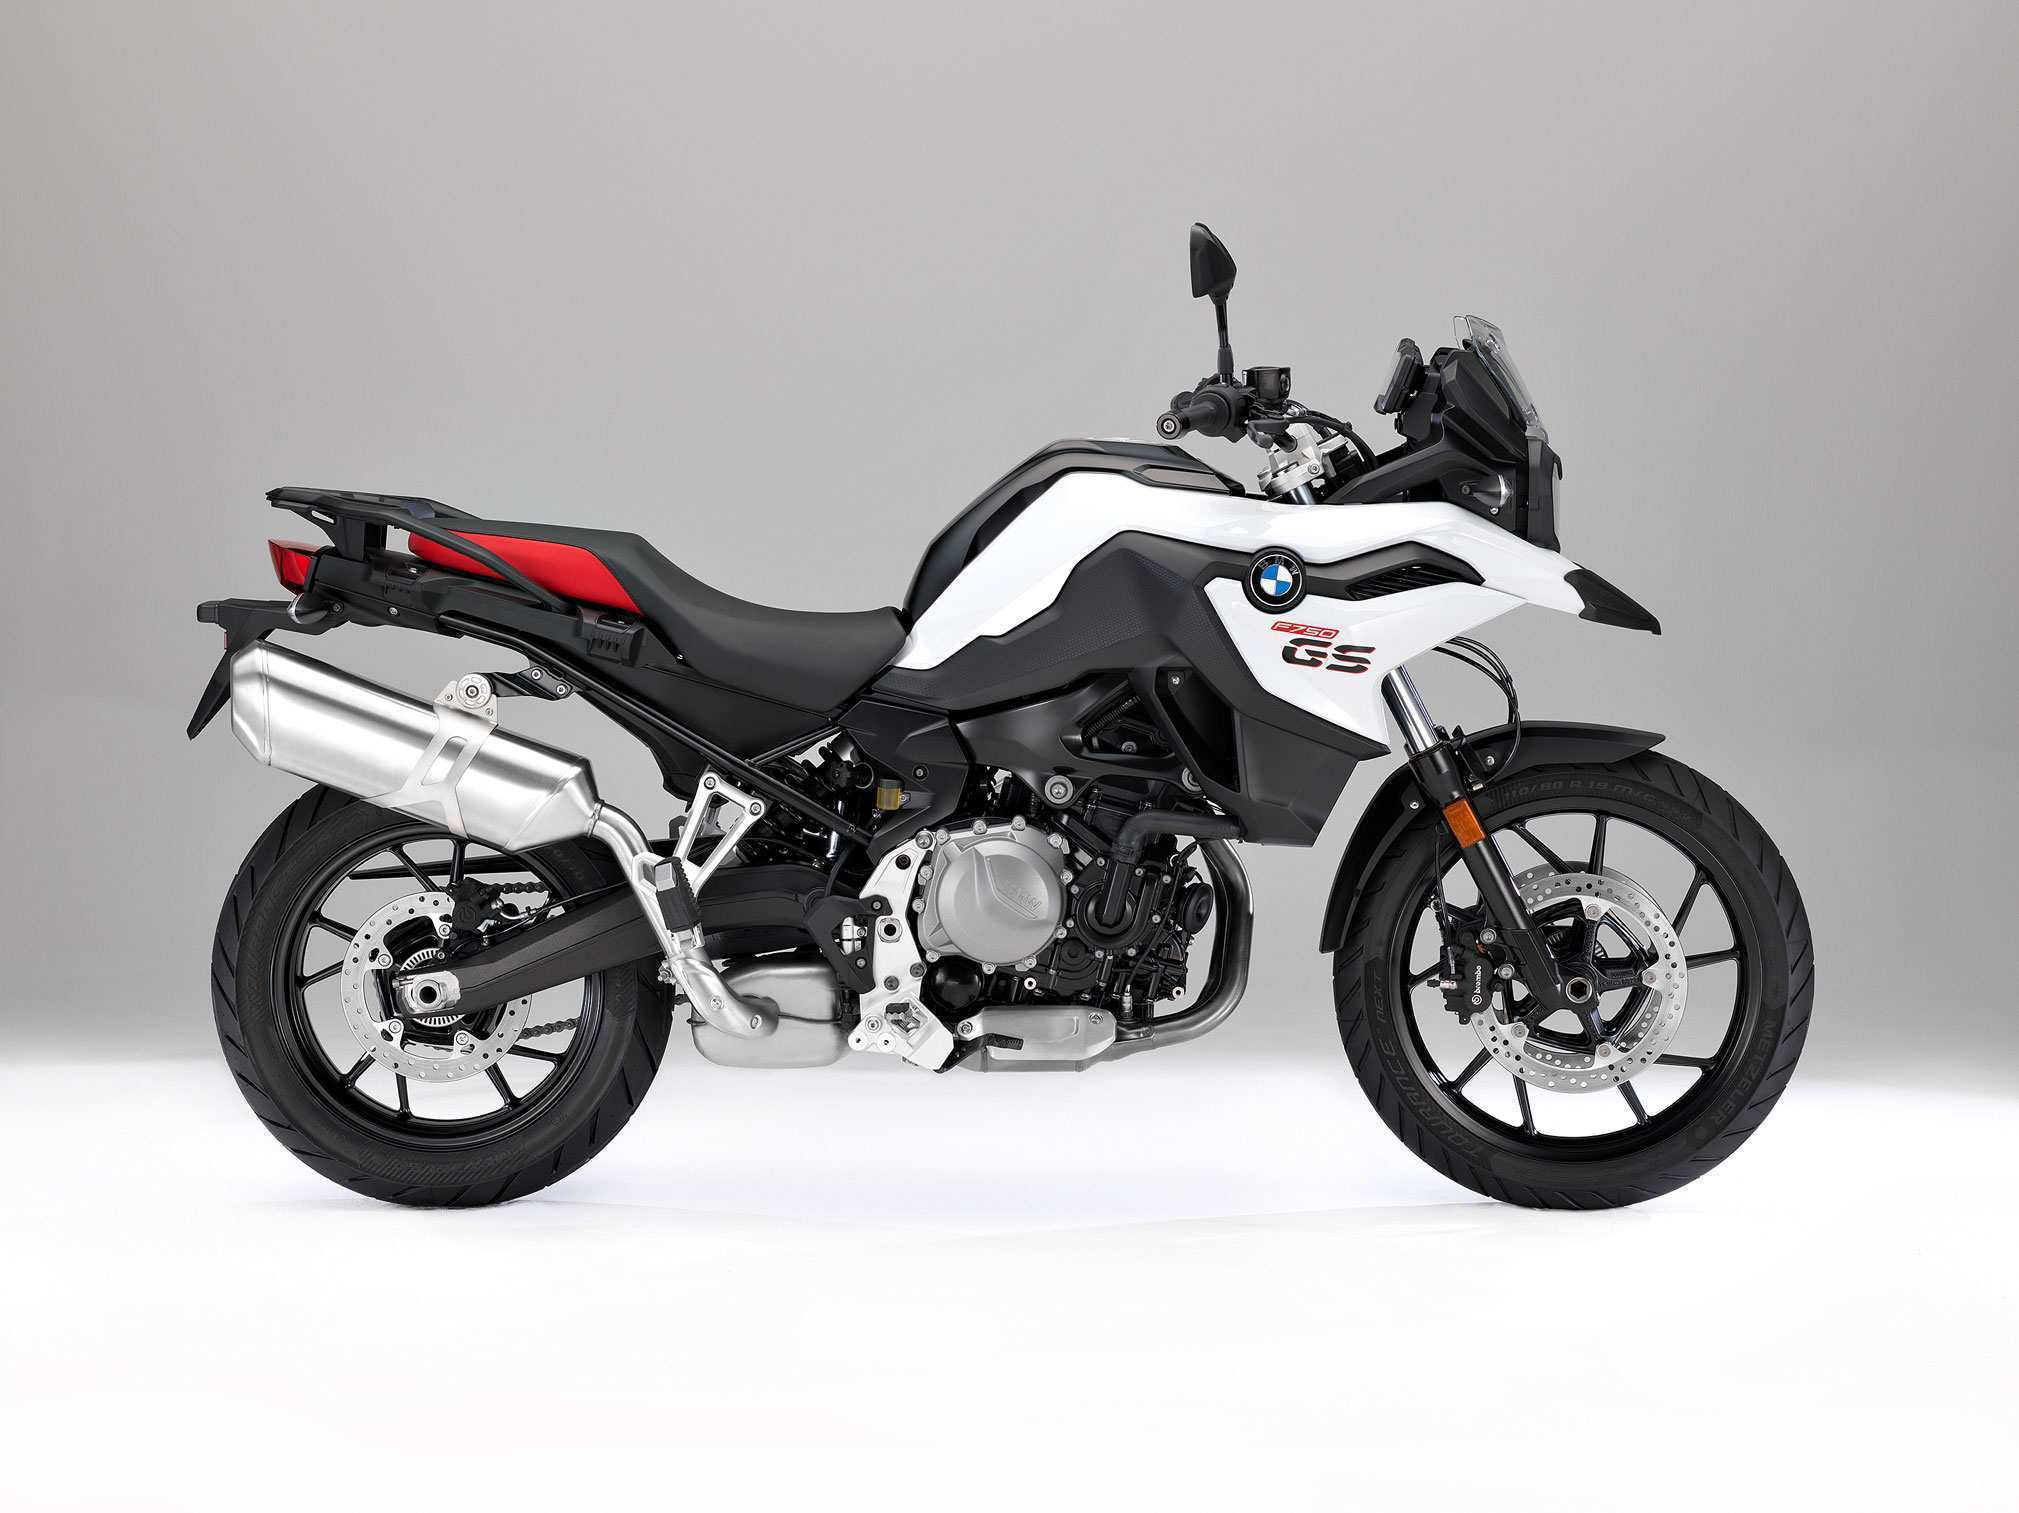 41 The Best Bmw F750Gs 2020 Redesign And Review